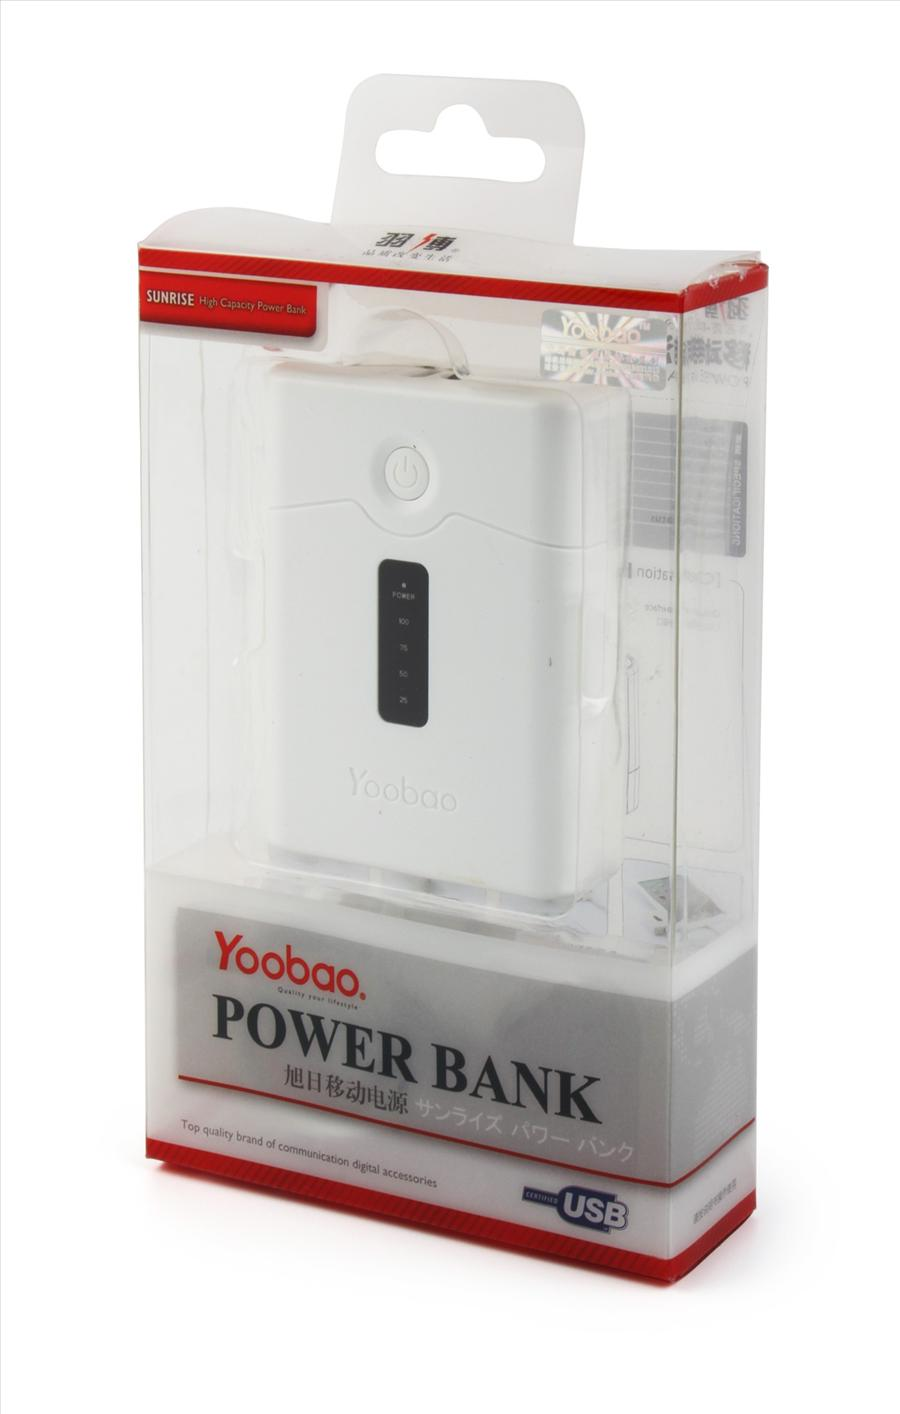 YOOBAO portable power bank YB-602 (4800mah) External Battery Iphone 4S